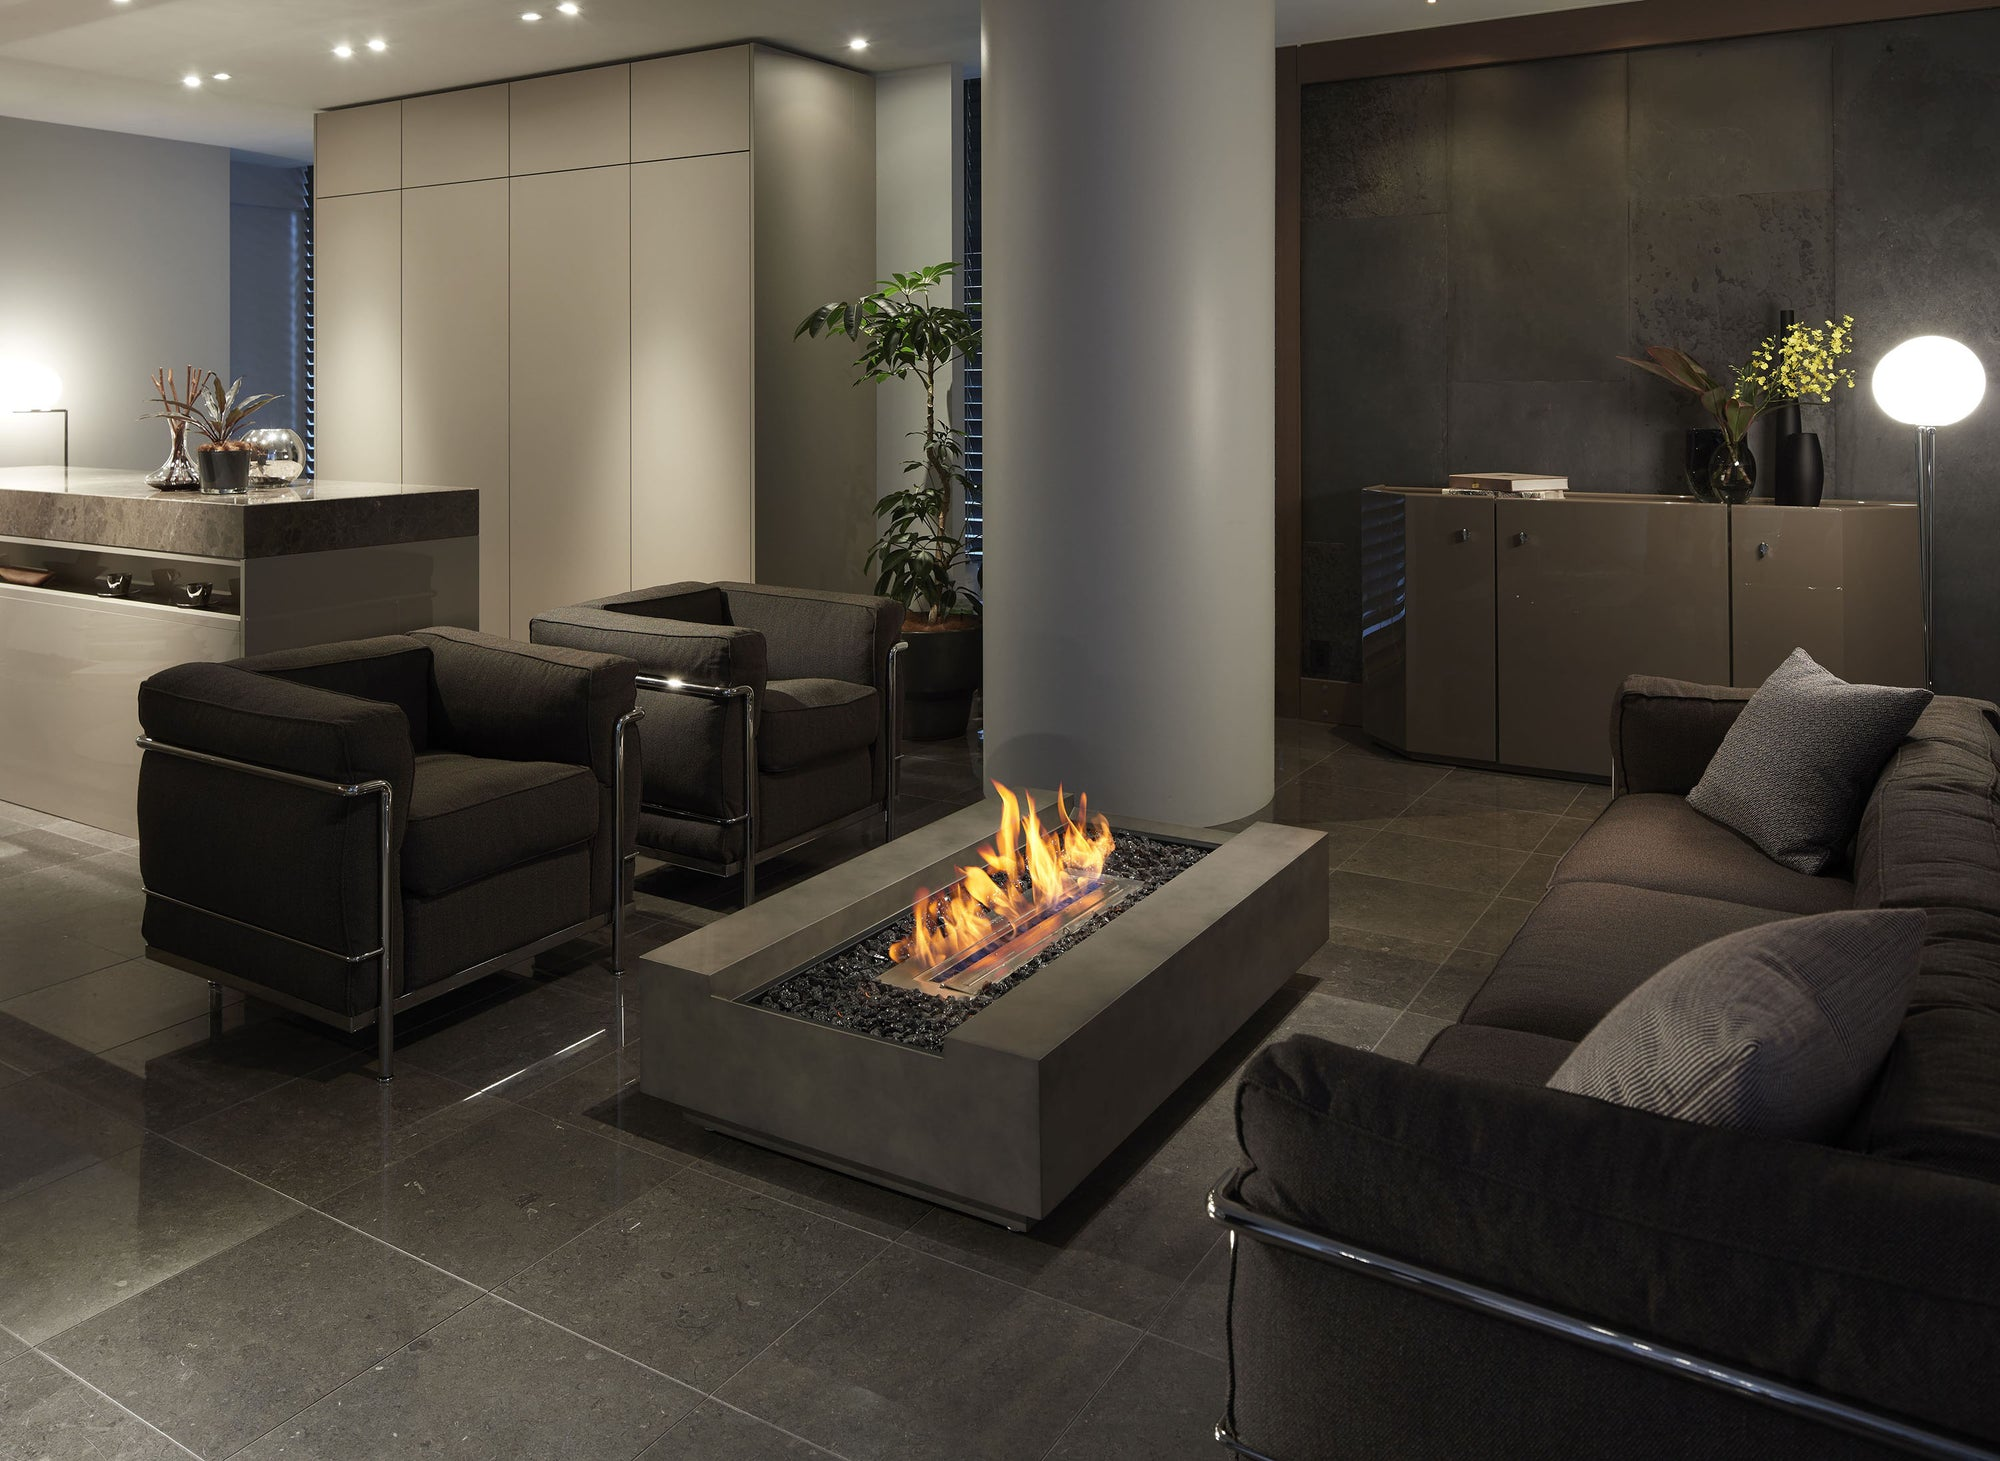 Indoor Fireplaces - What You Need to Know